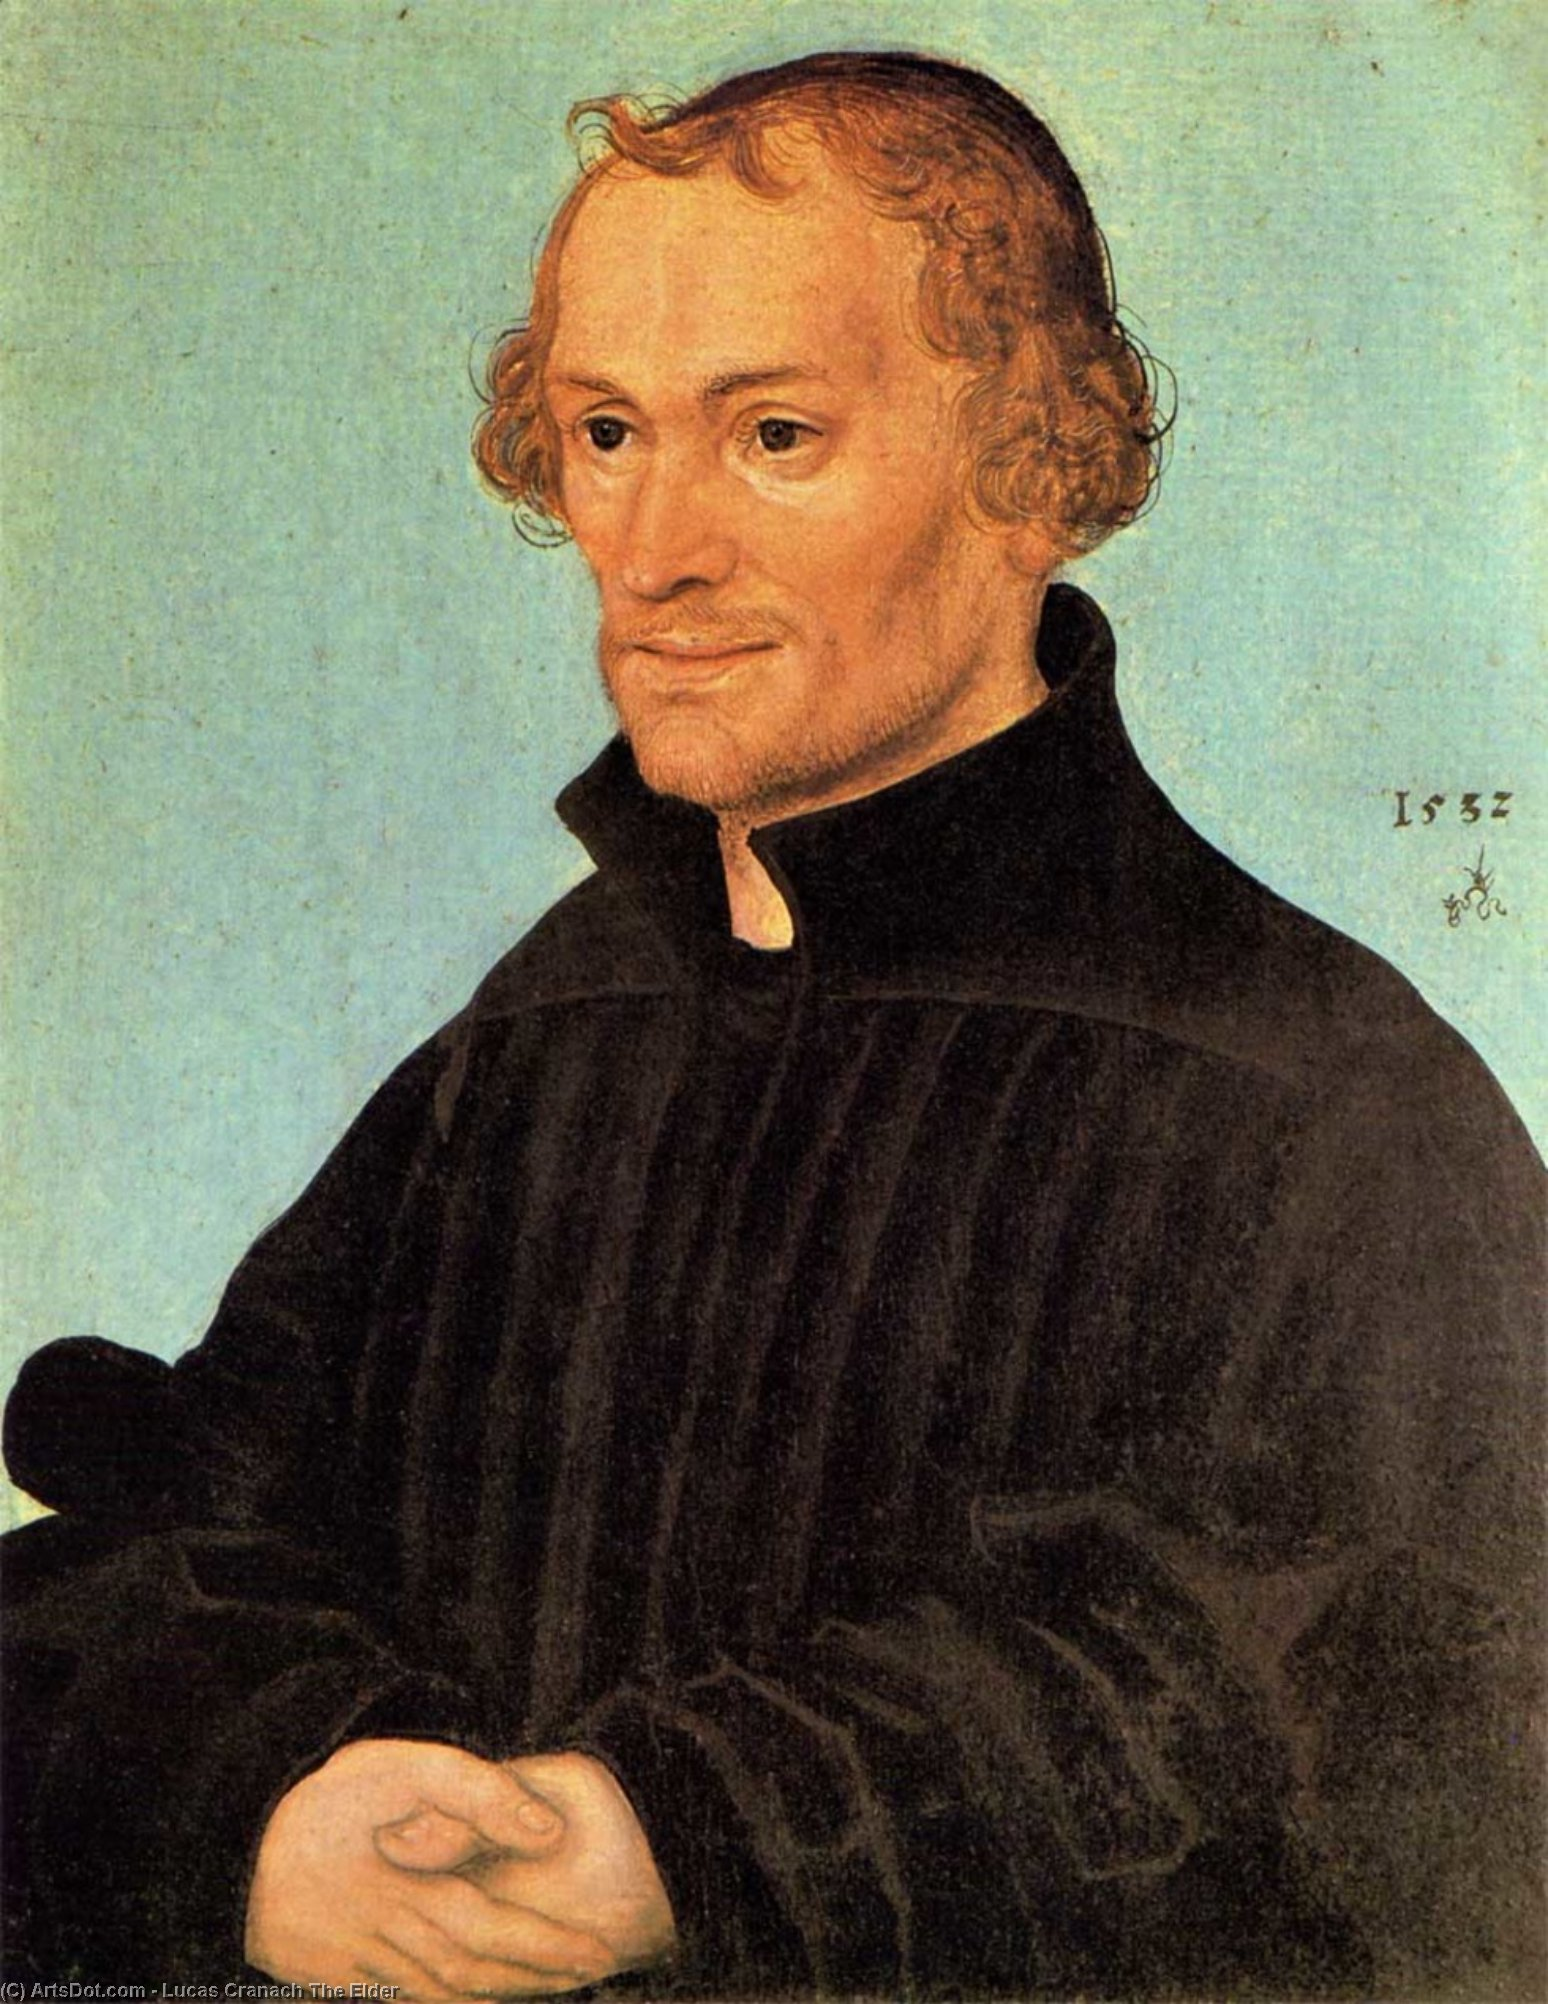 philipp melanchthon, 1532 von Lucas Cranach The Elder (1472-1553, Germany)